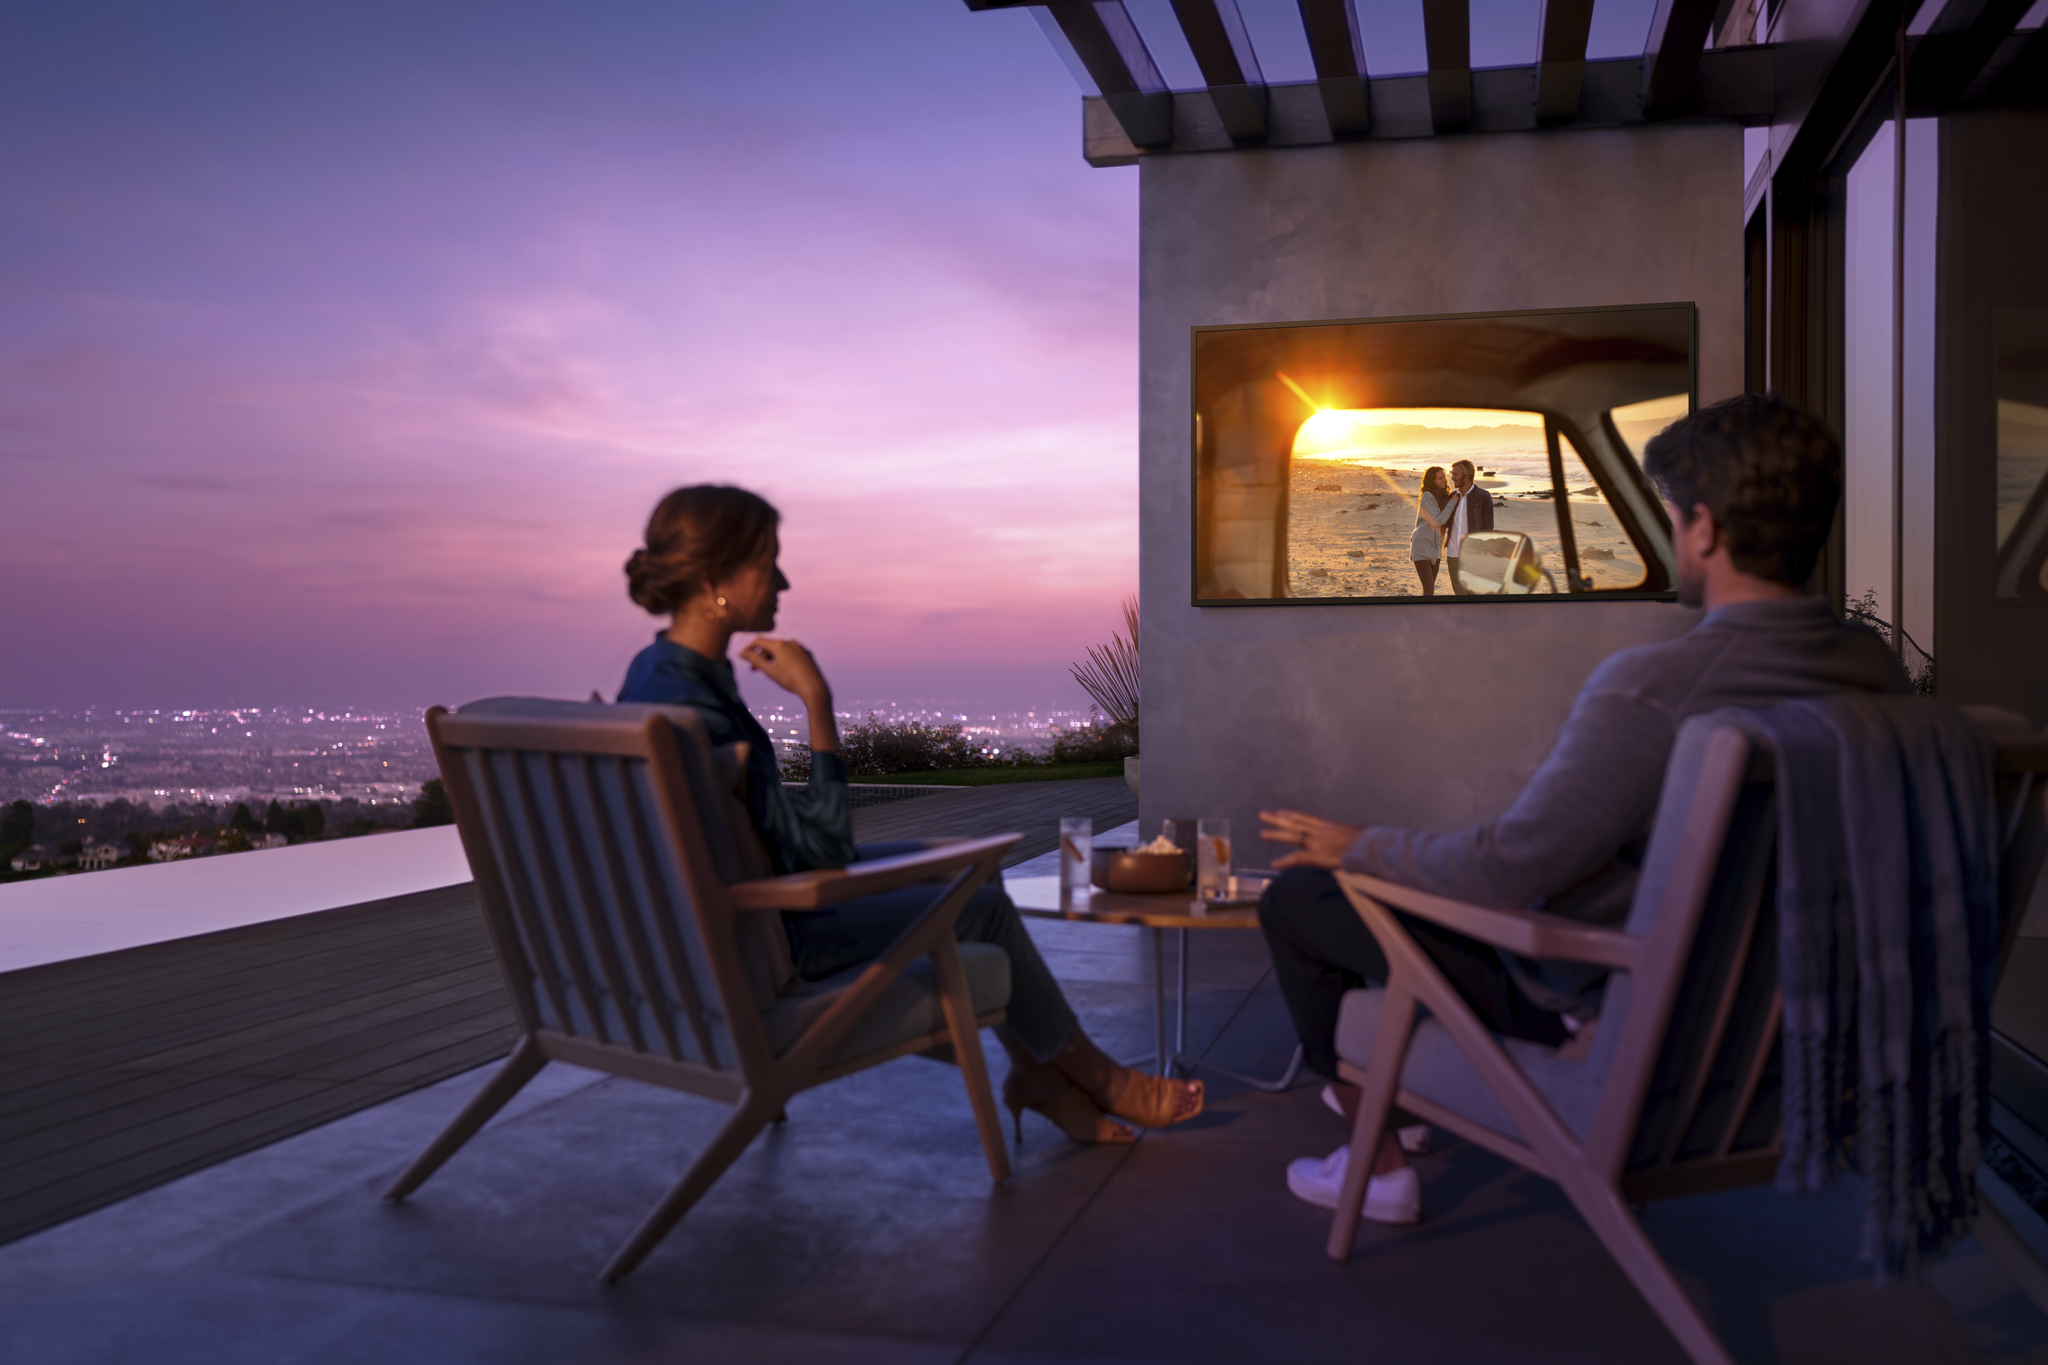 Enjoy some 4K TV with your nature on Samsung's new outdoor sets thumbnail